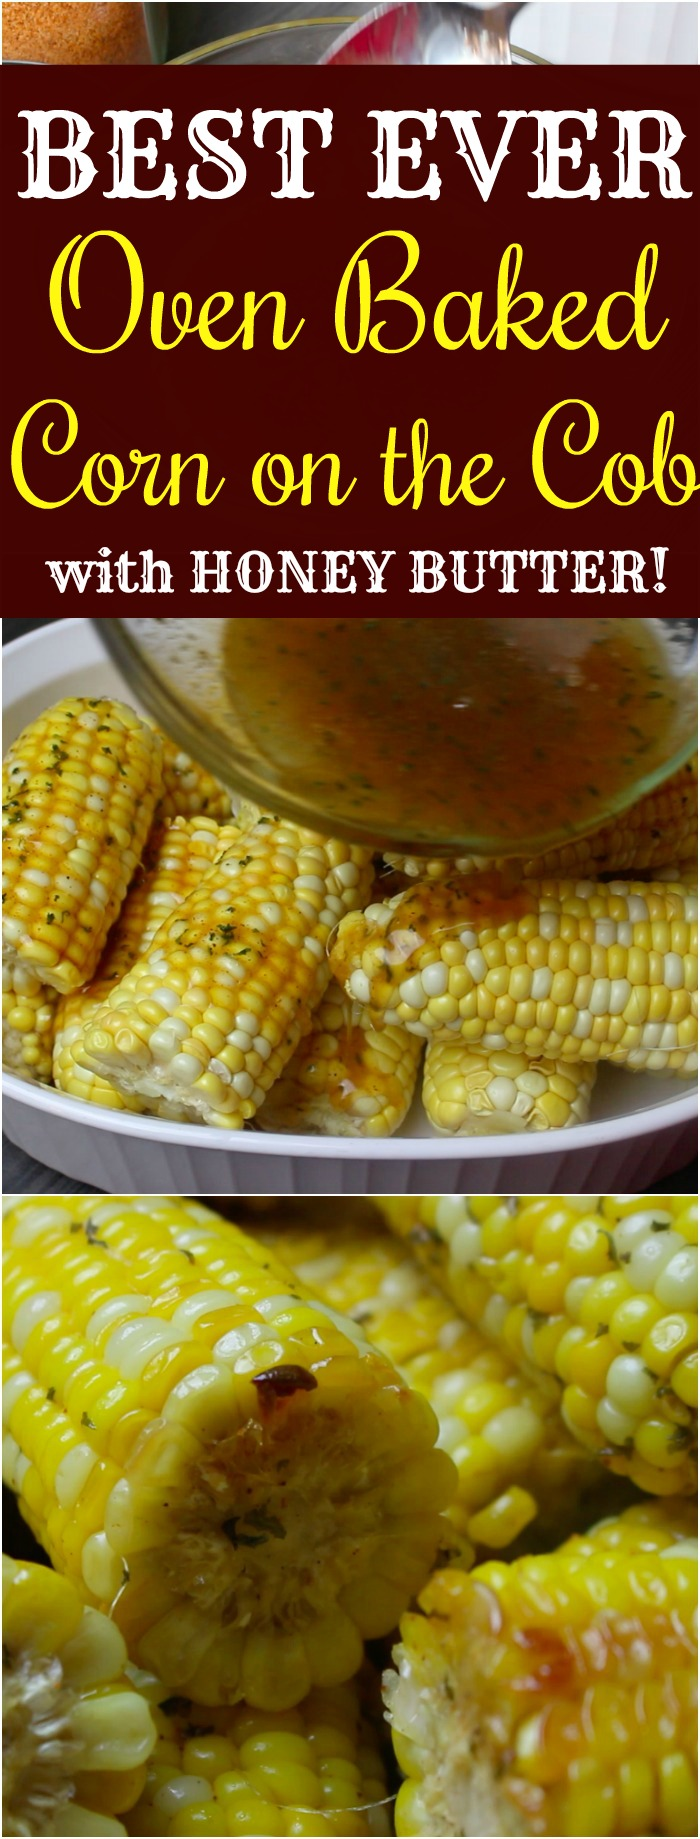 Oven Baked Corn on the Cob with Honey Butter | I Heart Recipes